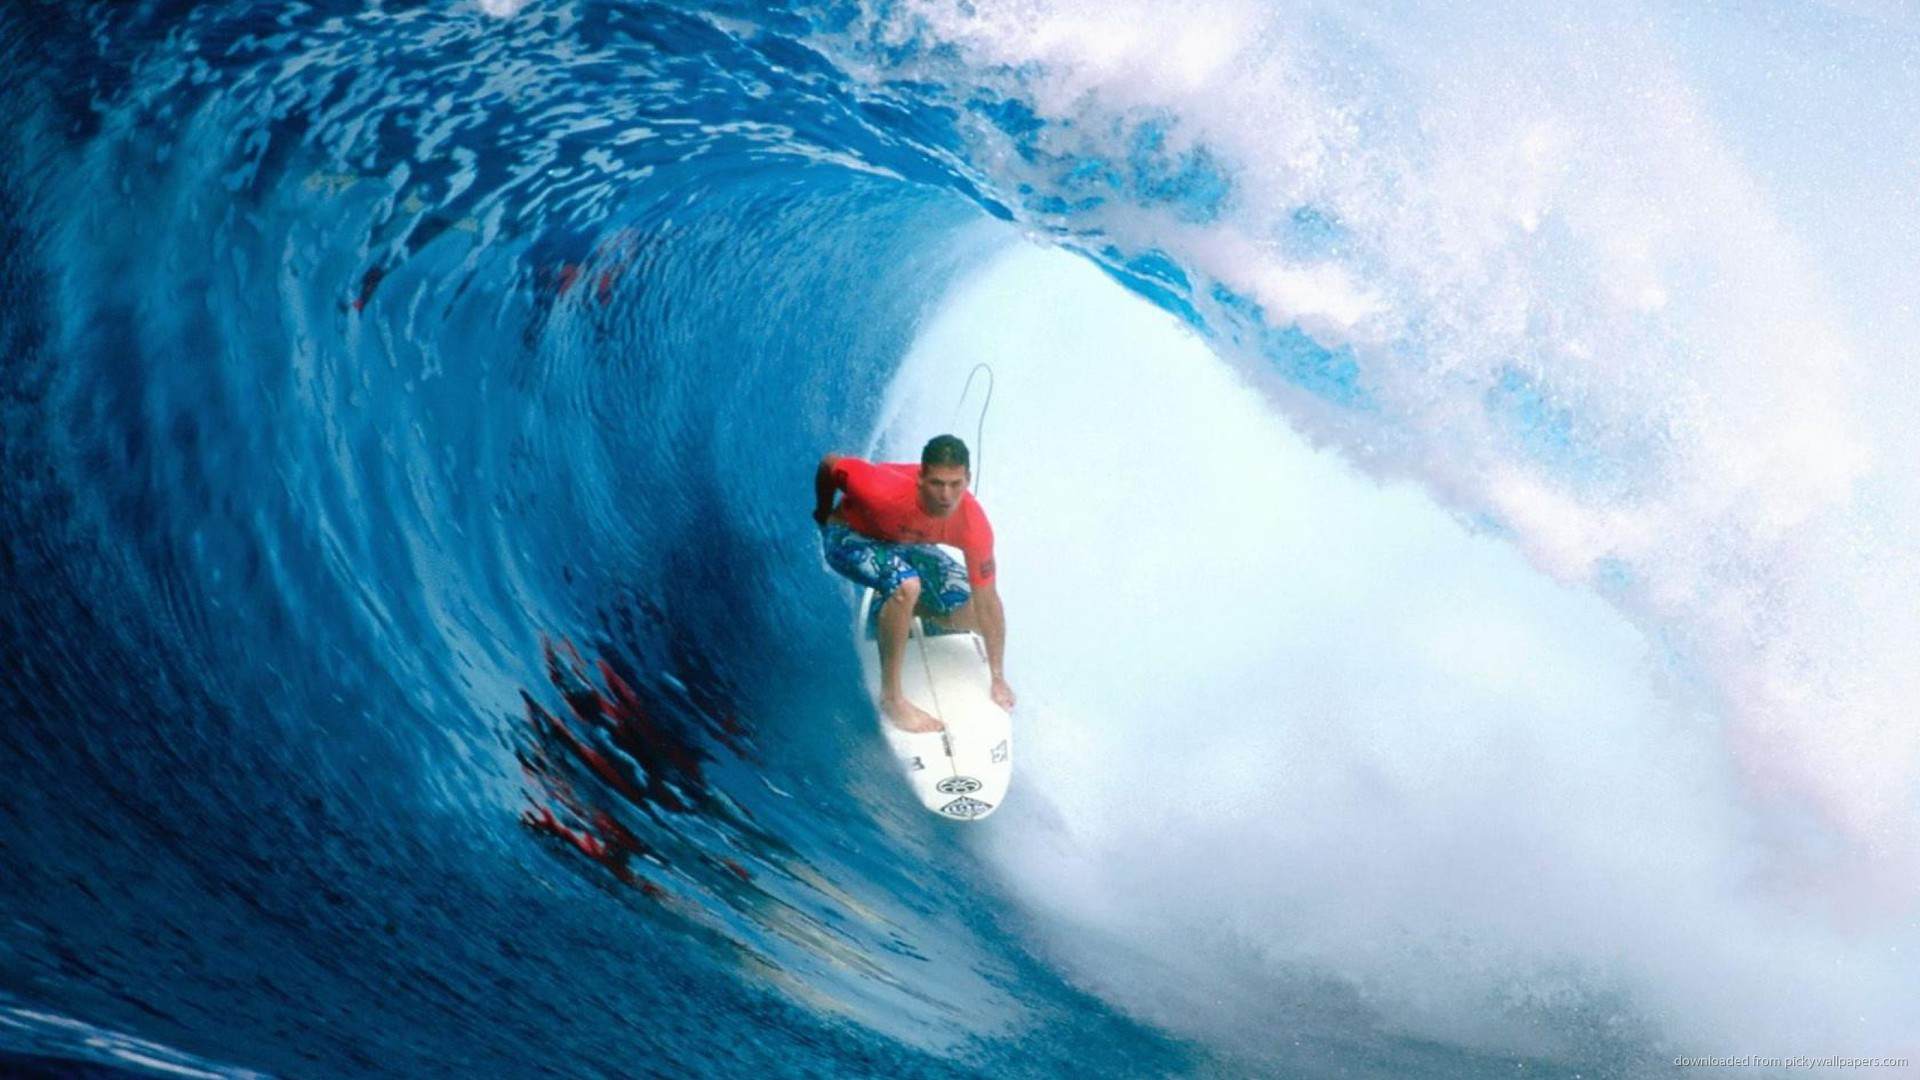 Surfing In A Tube picture